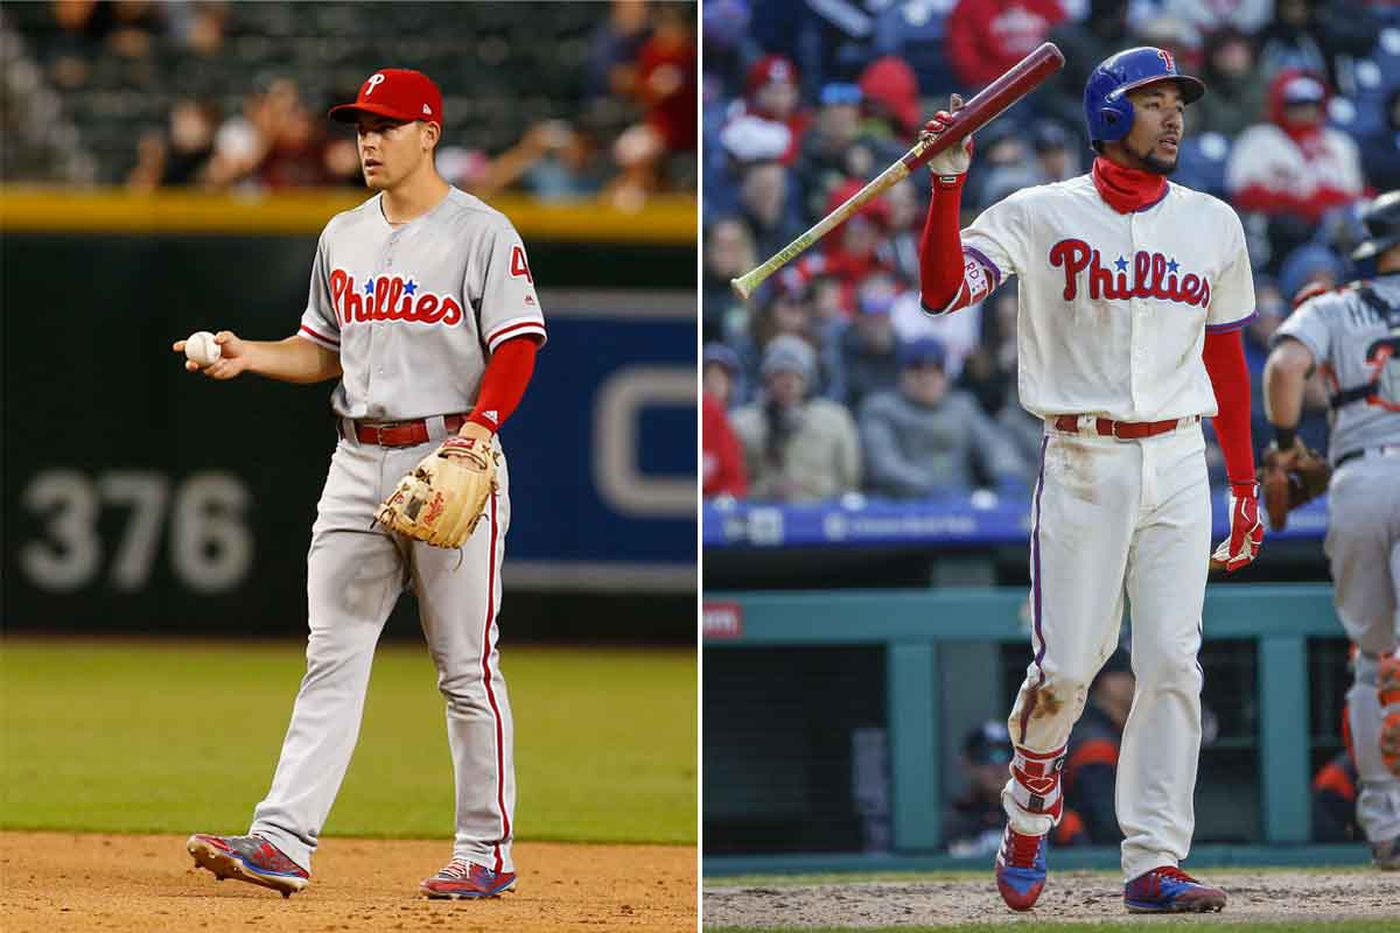 Phillies facing a decision on whether to send down Scott Kingery or J.P. Crawford